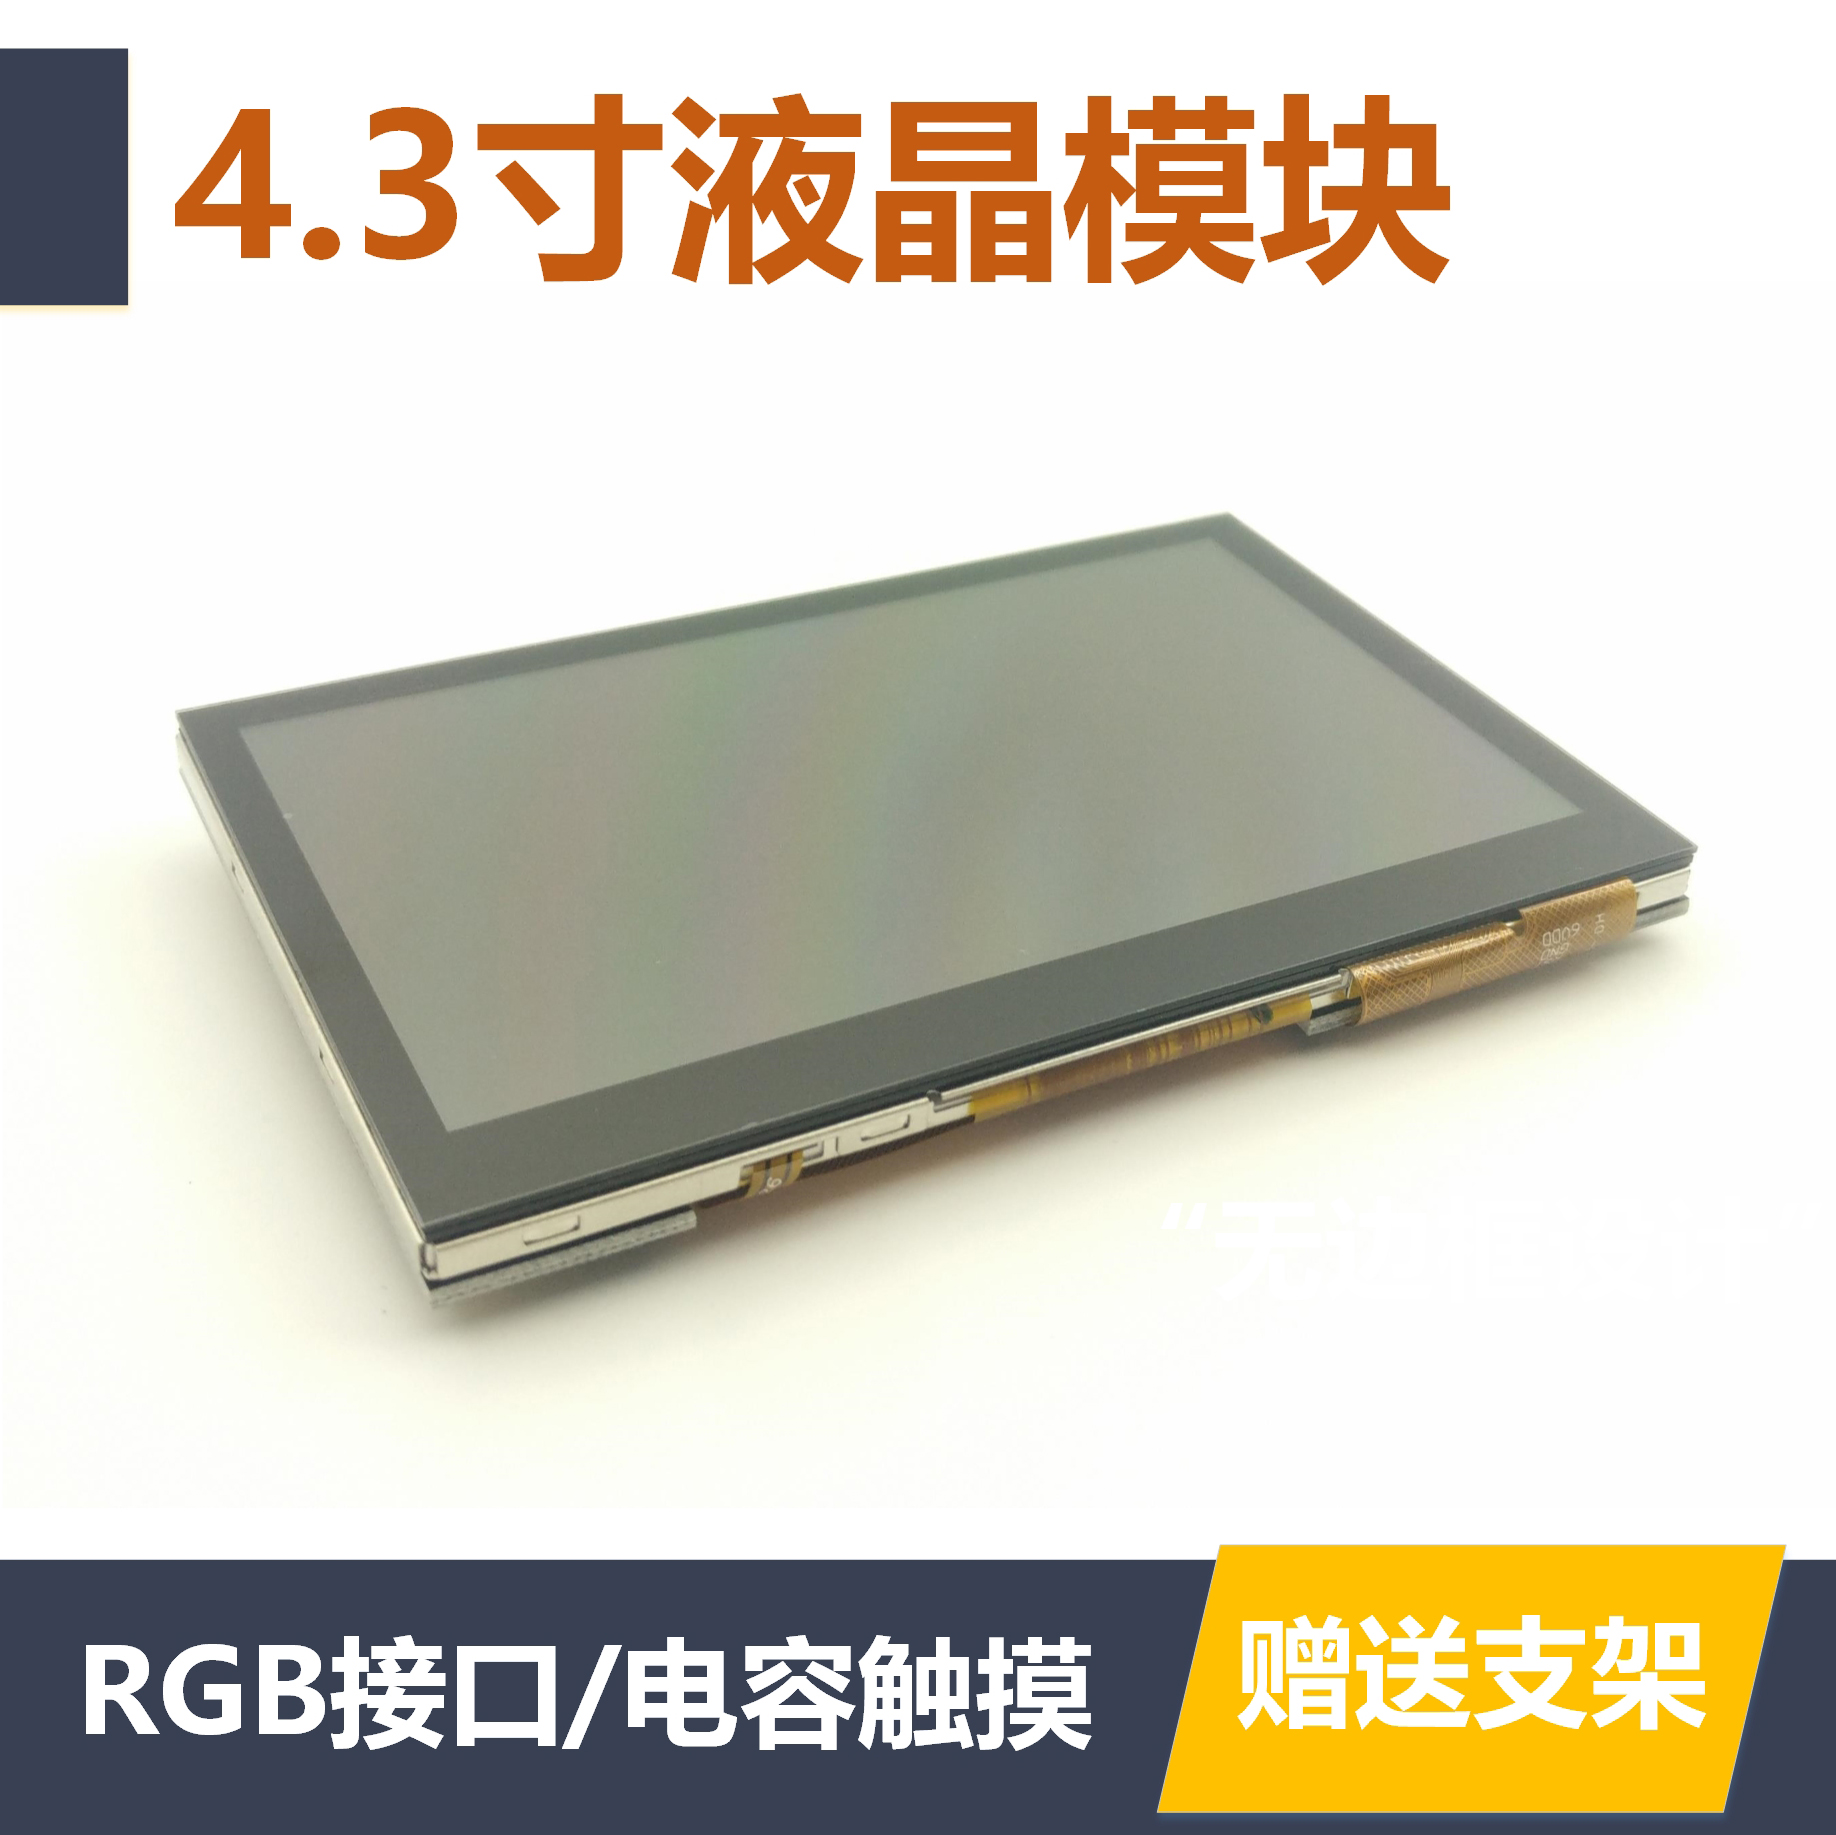 4.3 inch 5 inch 7 inch TFT LCD screen RGB interface MCU STM32 display module capacitive touch screen 18 5 inch g185xw01 v 1 g185xw01 v1 lcd display screens